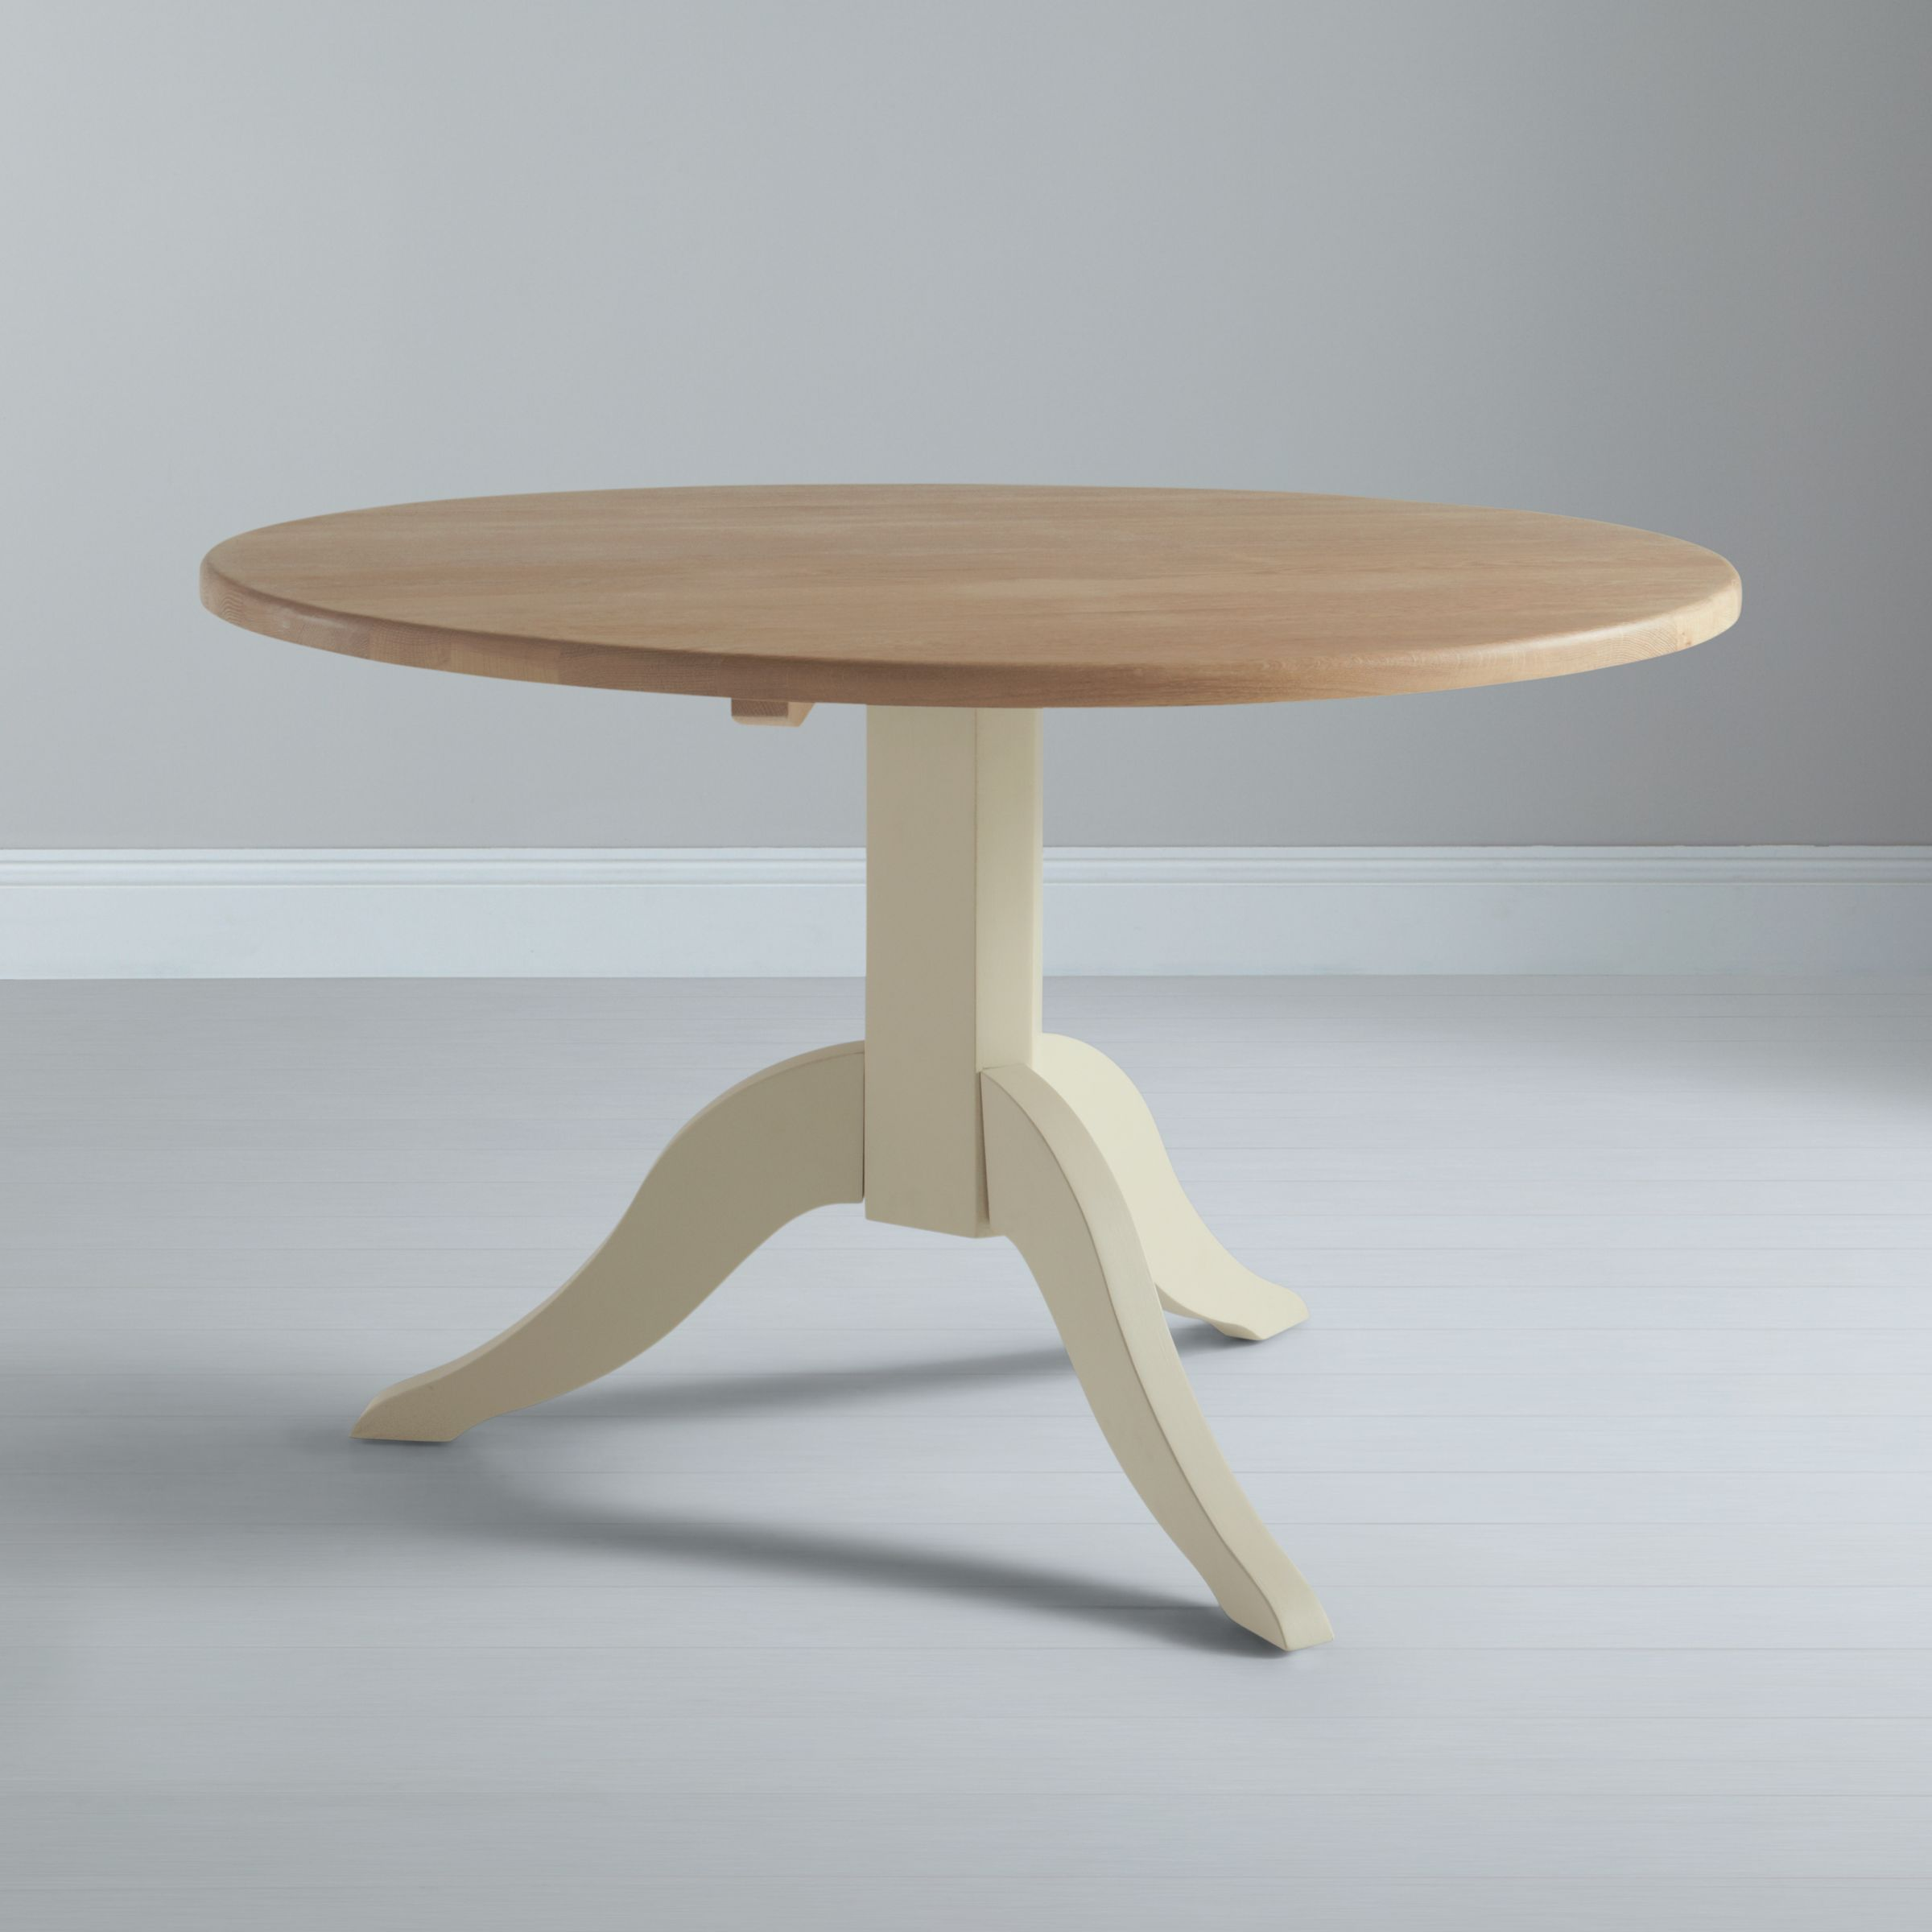 neptune oak dining tables : 230606116zoom from www.comparestoreprices.co.uk size 1600 x 1600 jpeg 159kB